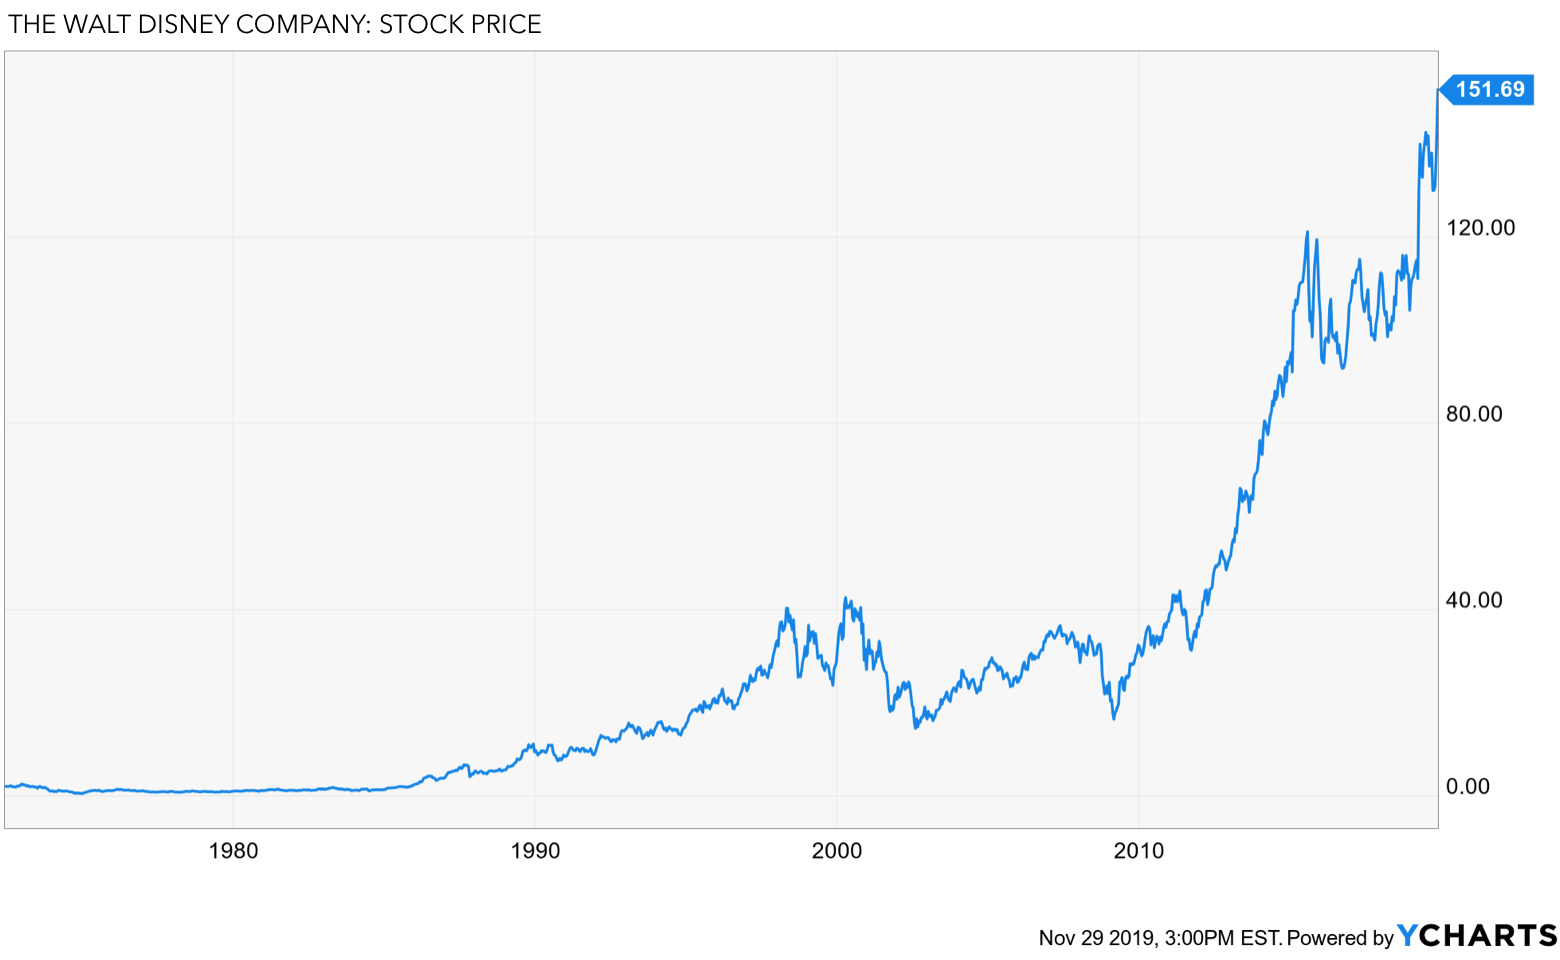 Buffett & Disney: Disney's Long-Term Stock Price Chart